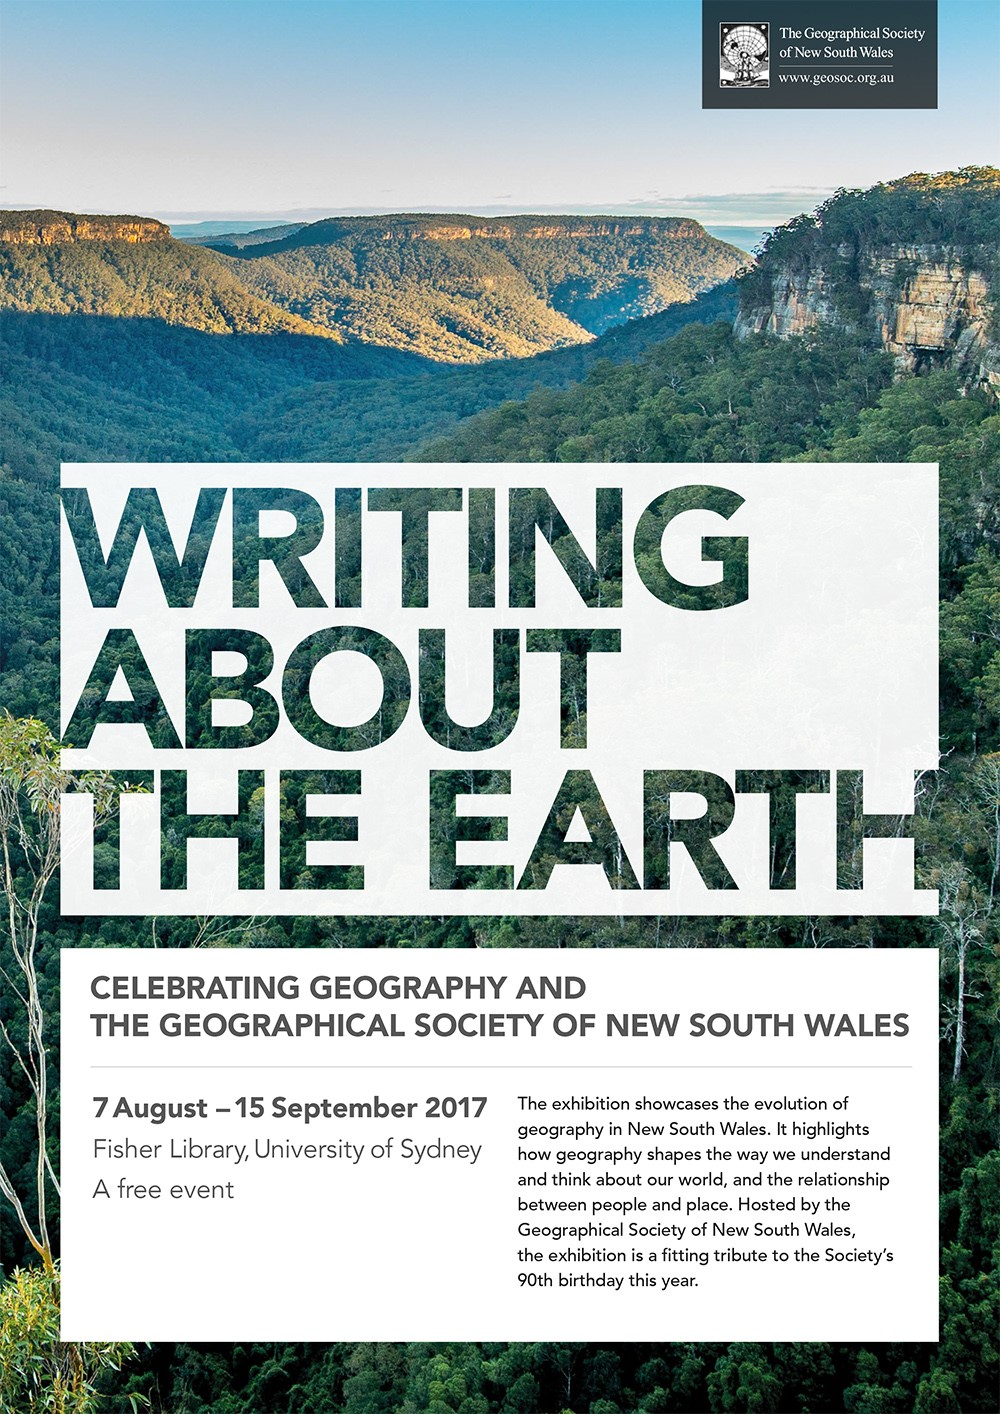 Writing about the earth - Celebrating geography and The Geographical Society of NSW